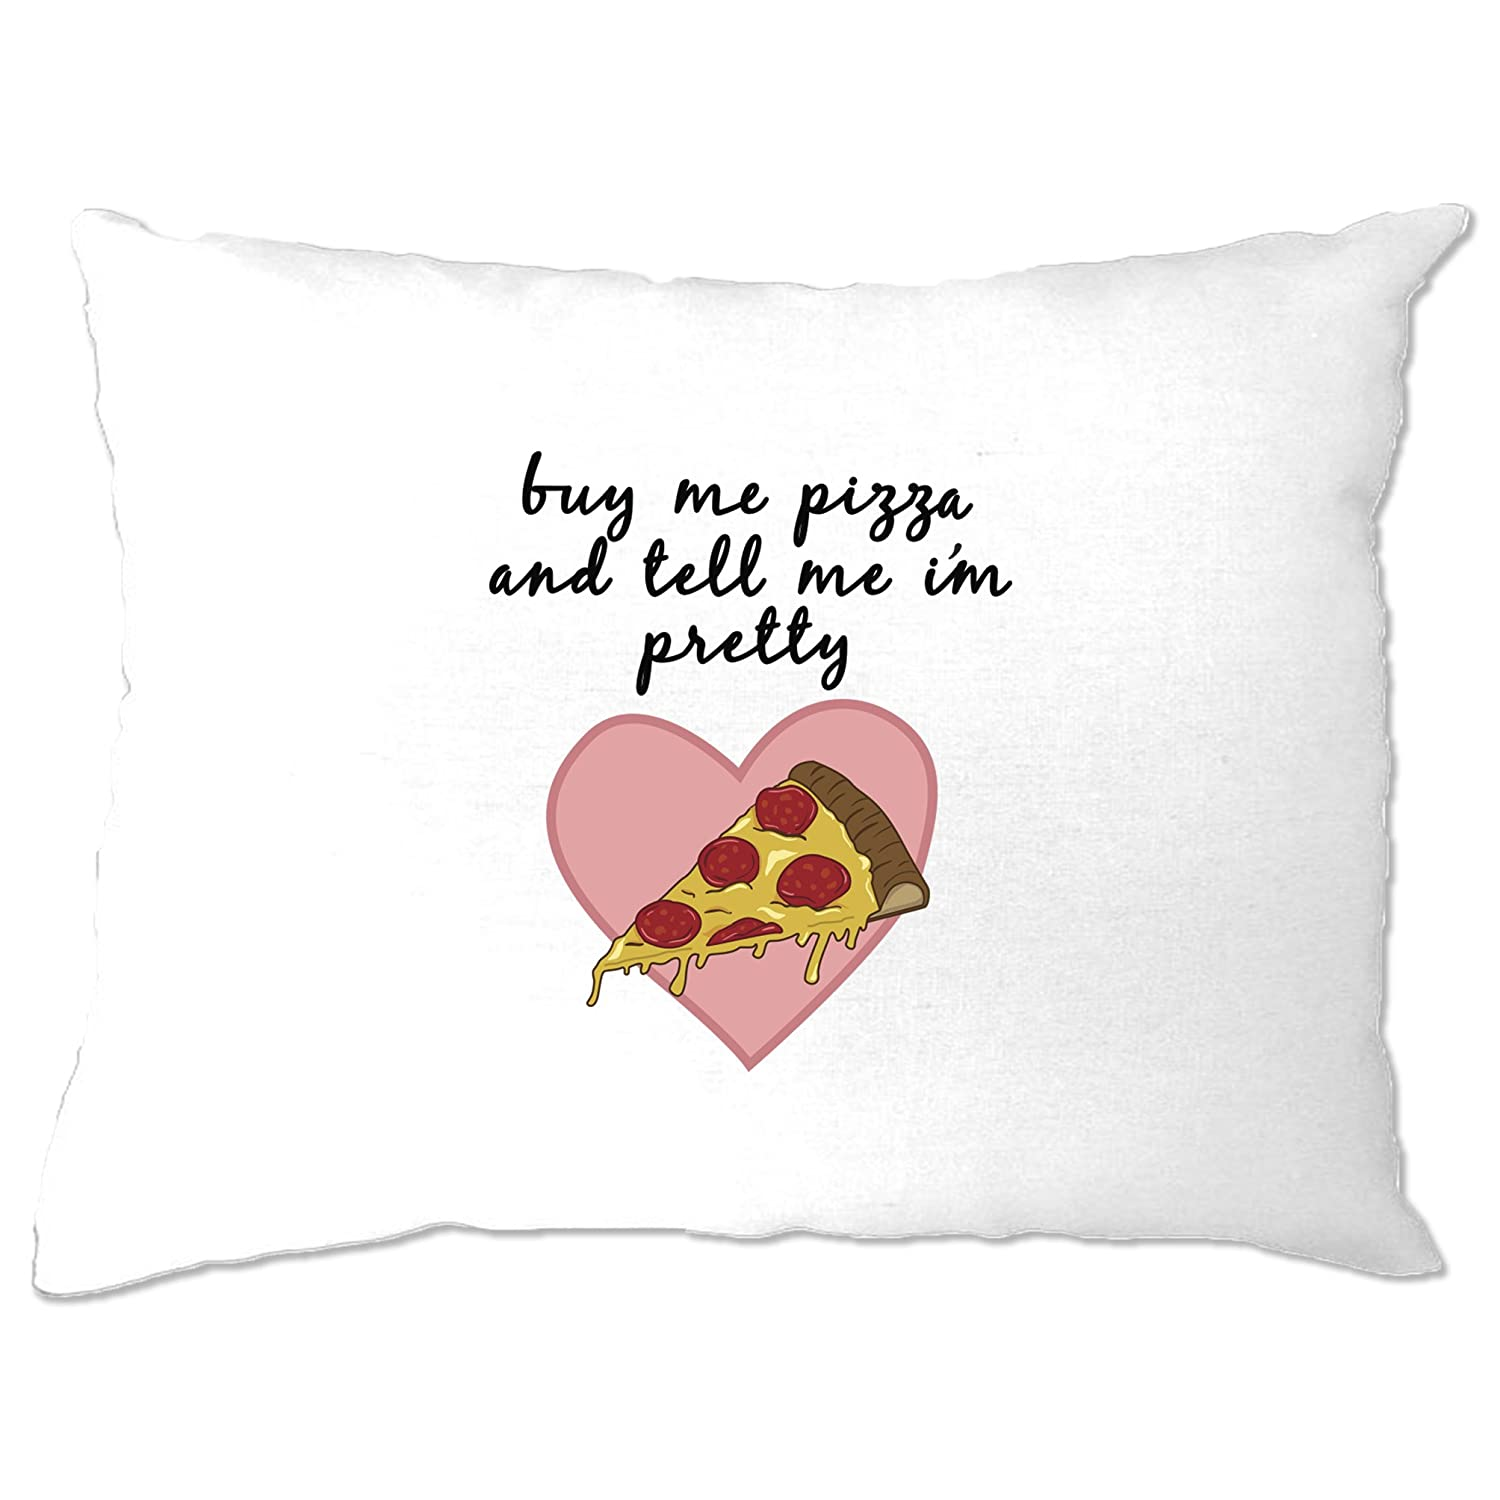 Joke Food Pillow Case Buy Me Pizza And Tell Me I'm Pretty White One Size A-PC-01687-WHT